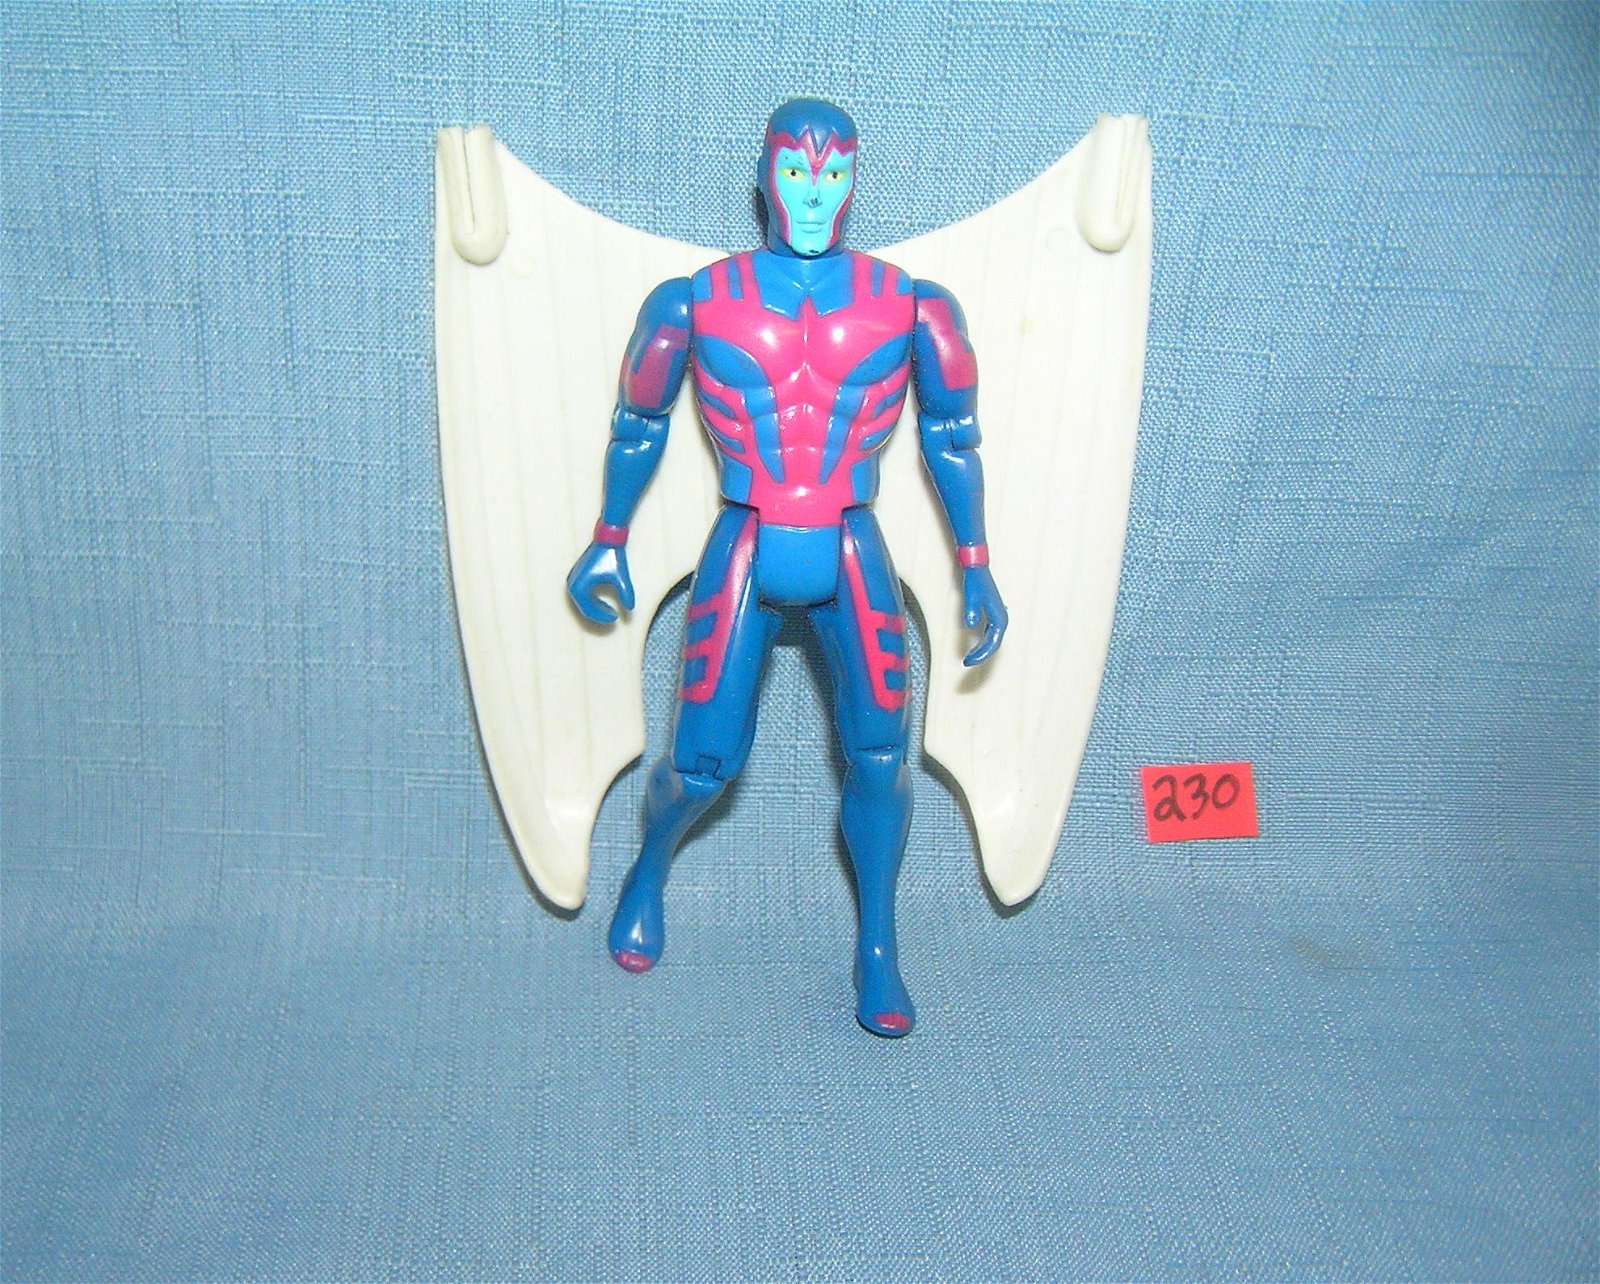 Vintage 5 inch action figure